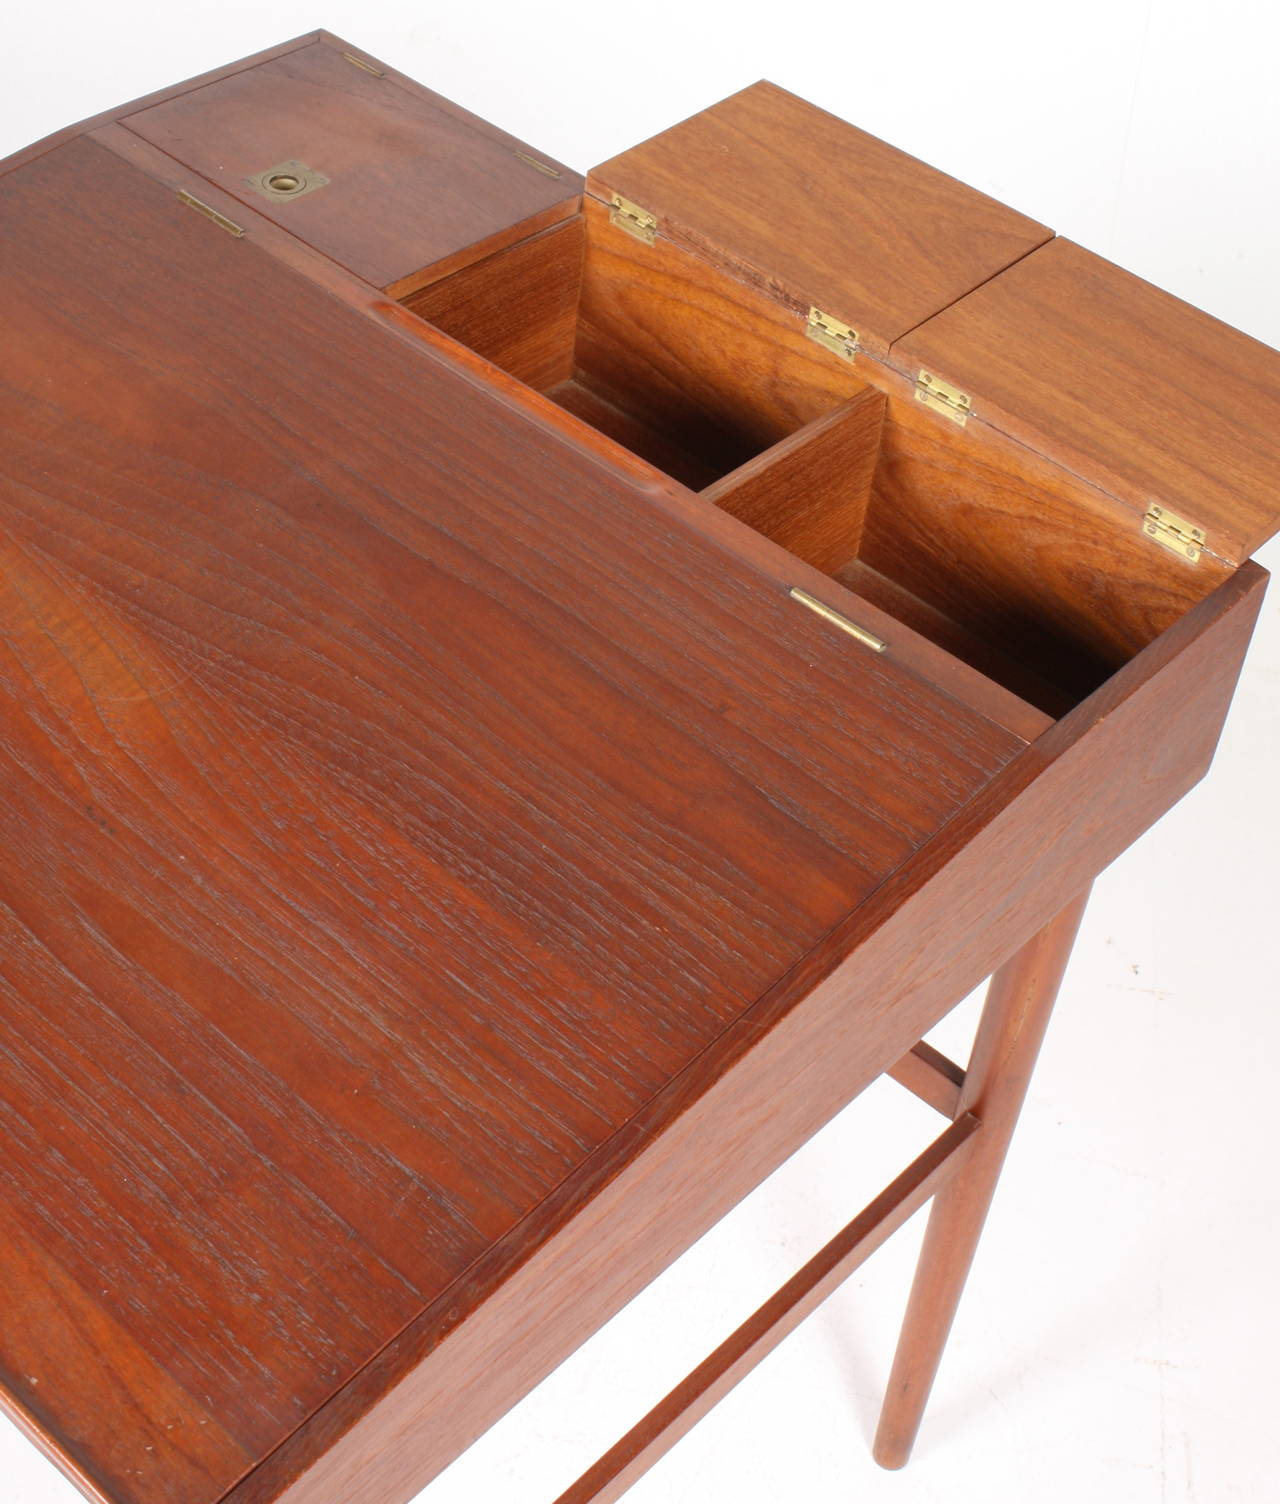 Mid-20th Century Writing Desk by Finn Juhl For Sale